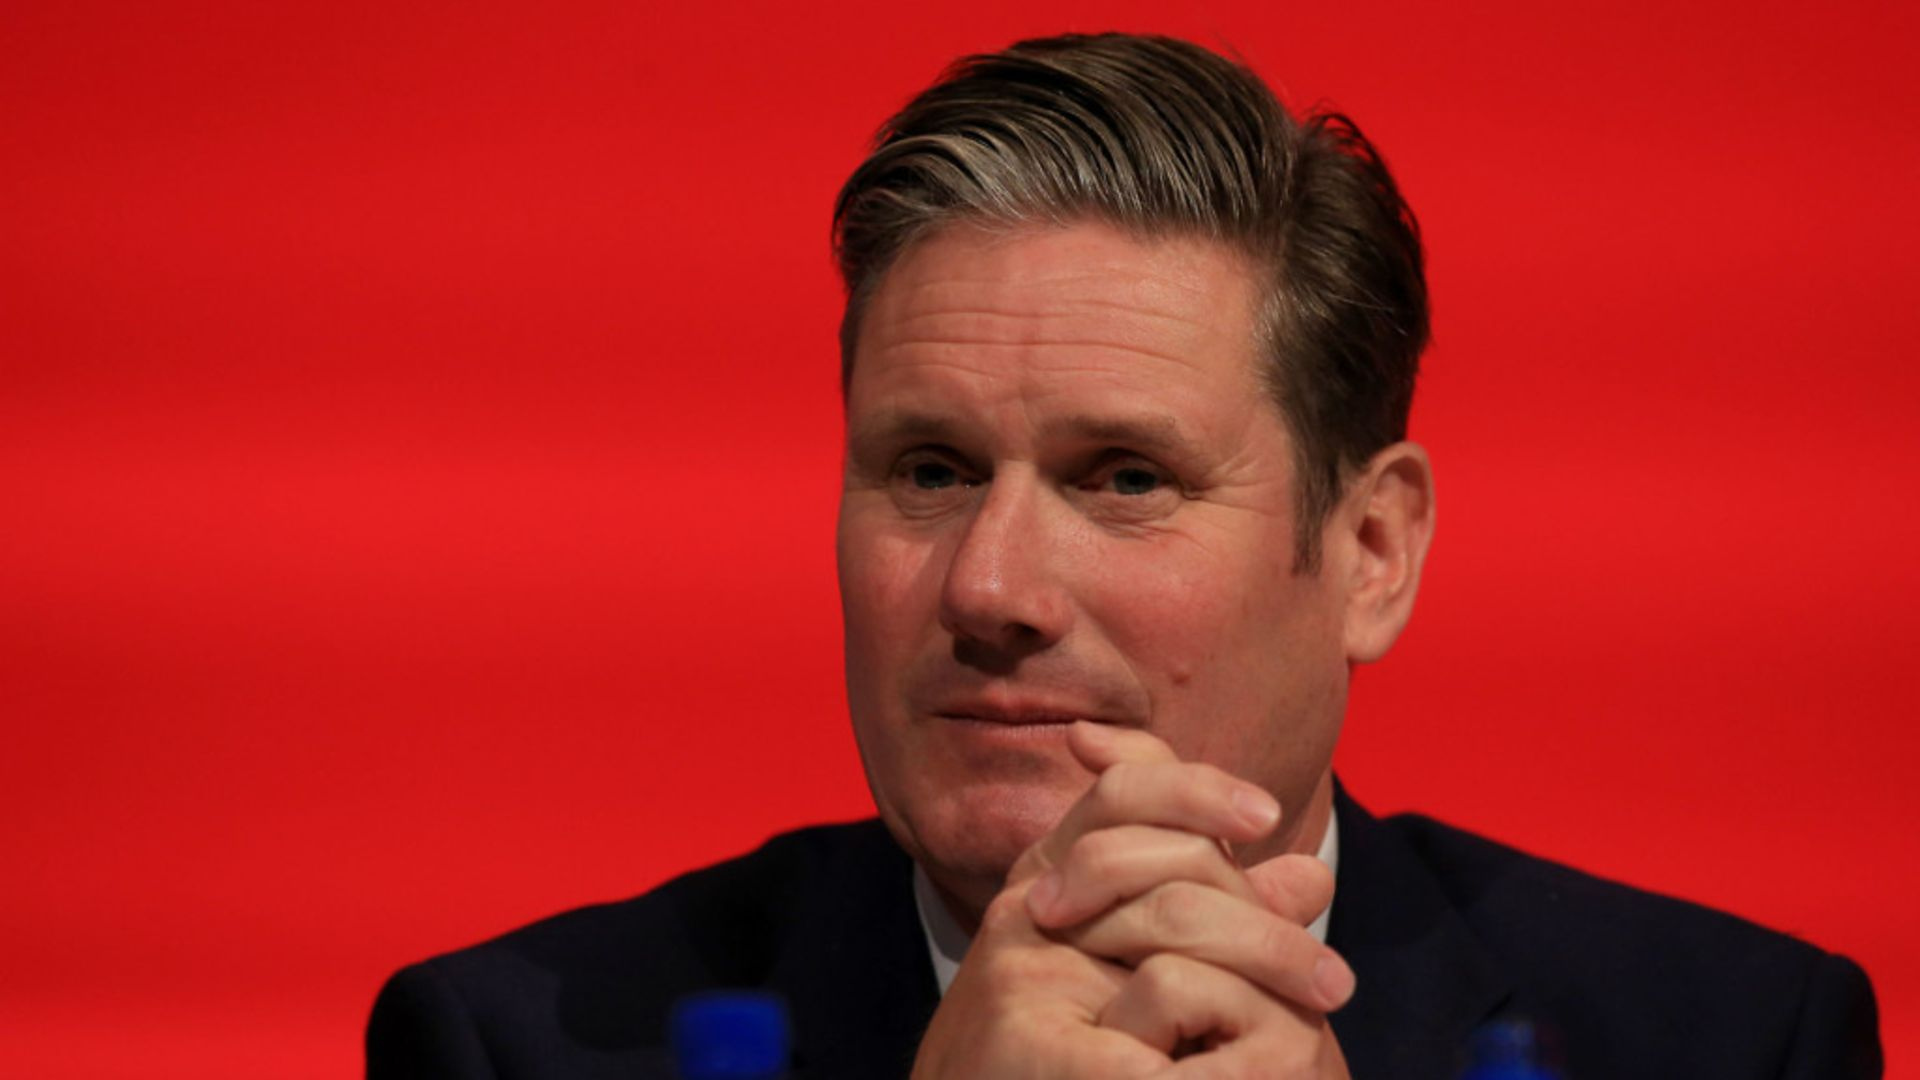 Sir Keir Starmer - Credit: PA Wire/PA Images